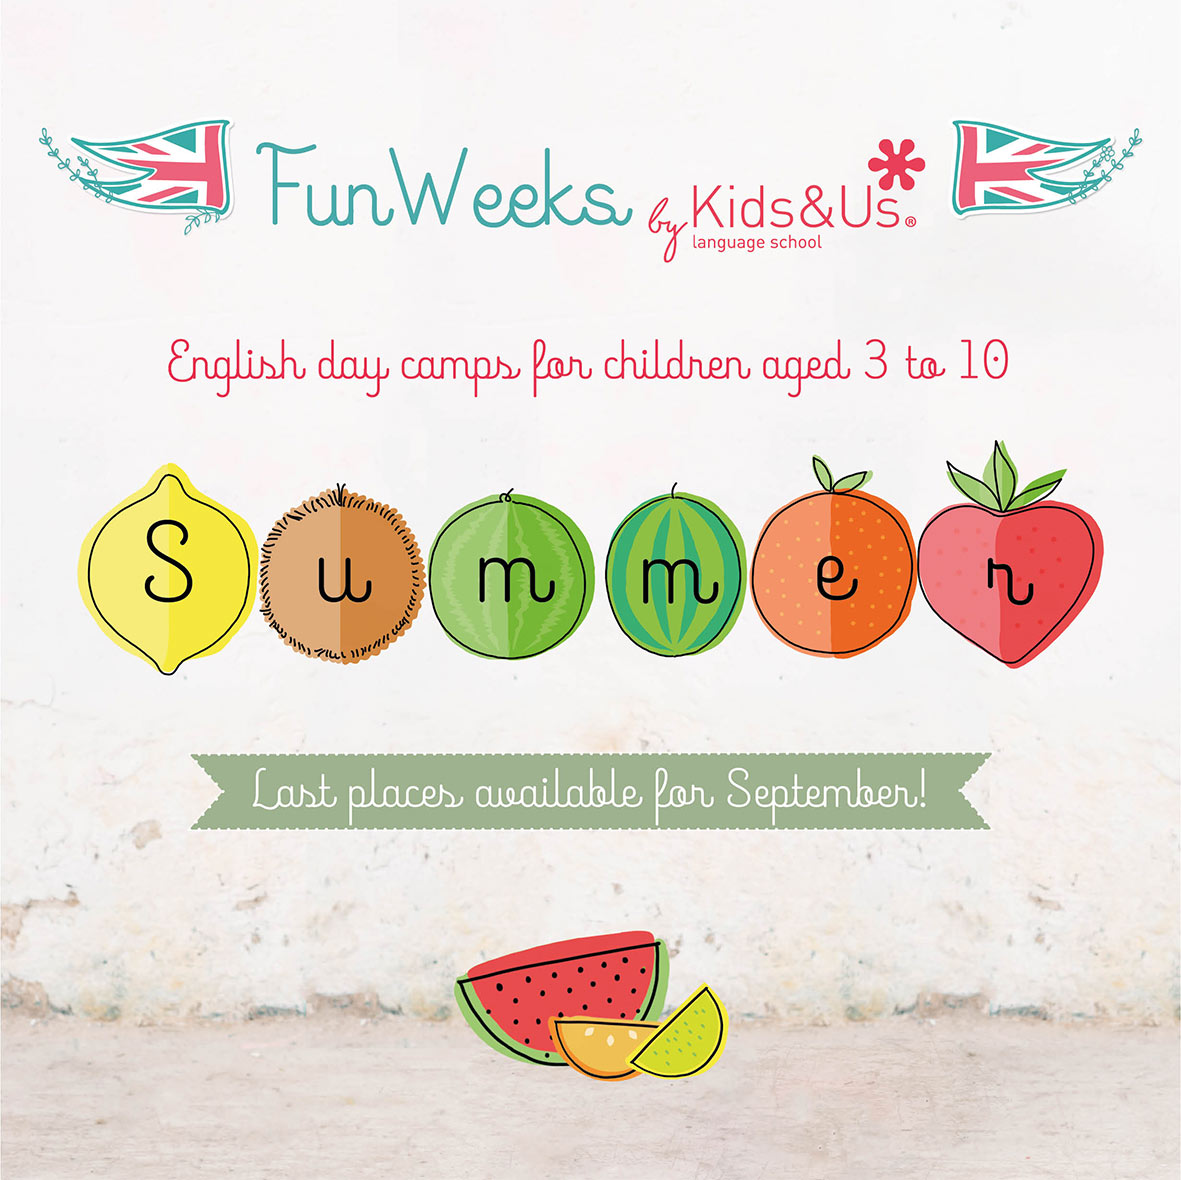 Last Summer Fun Weeks during the month of September!